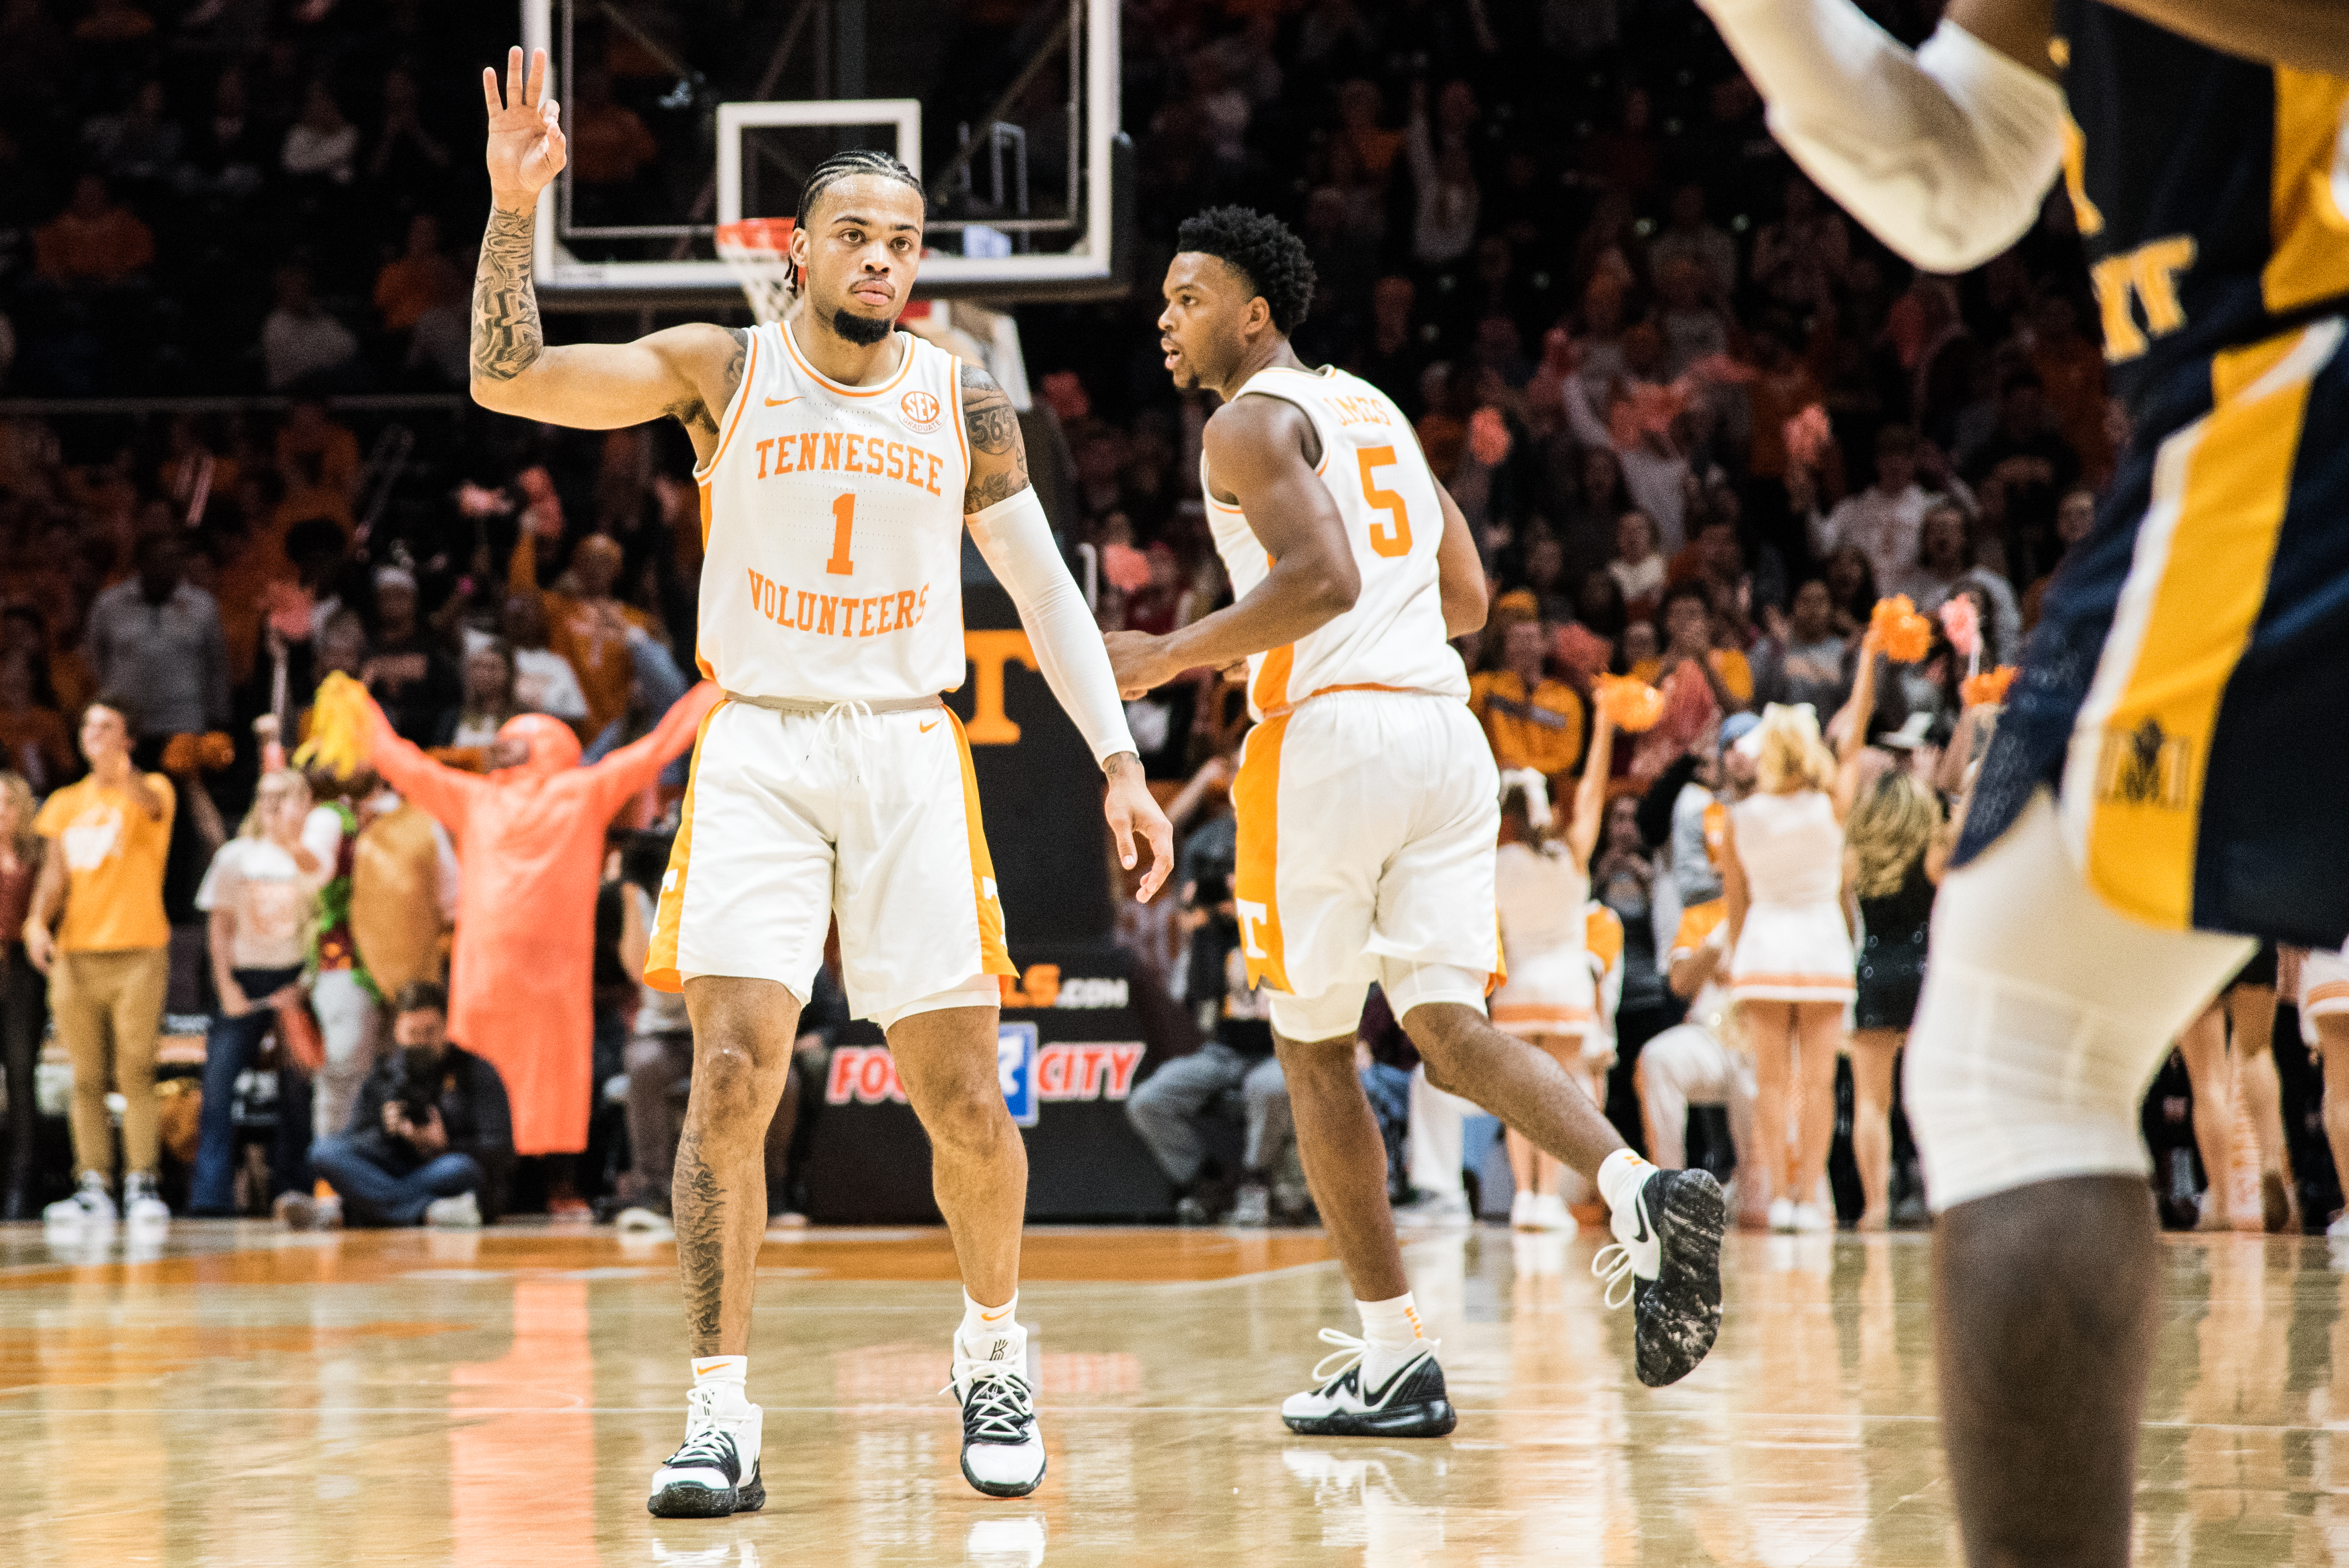 vcu tennessee betting line